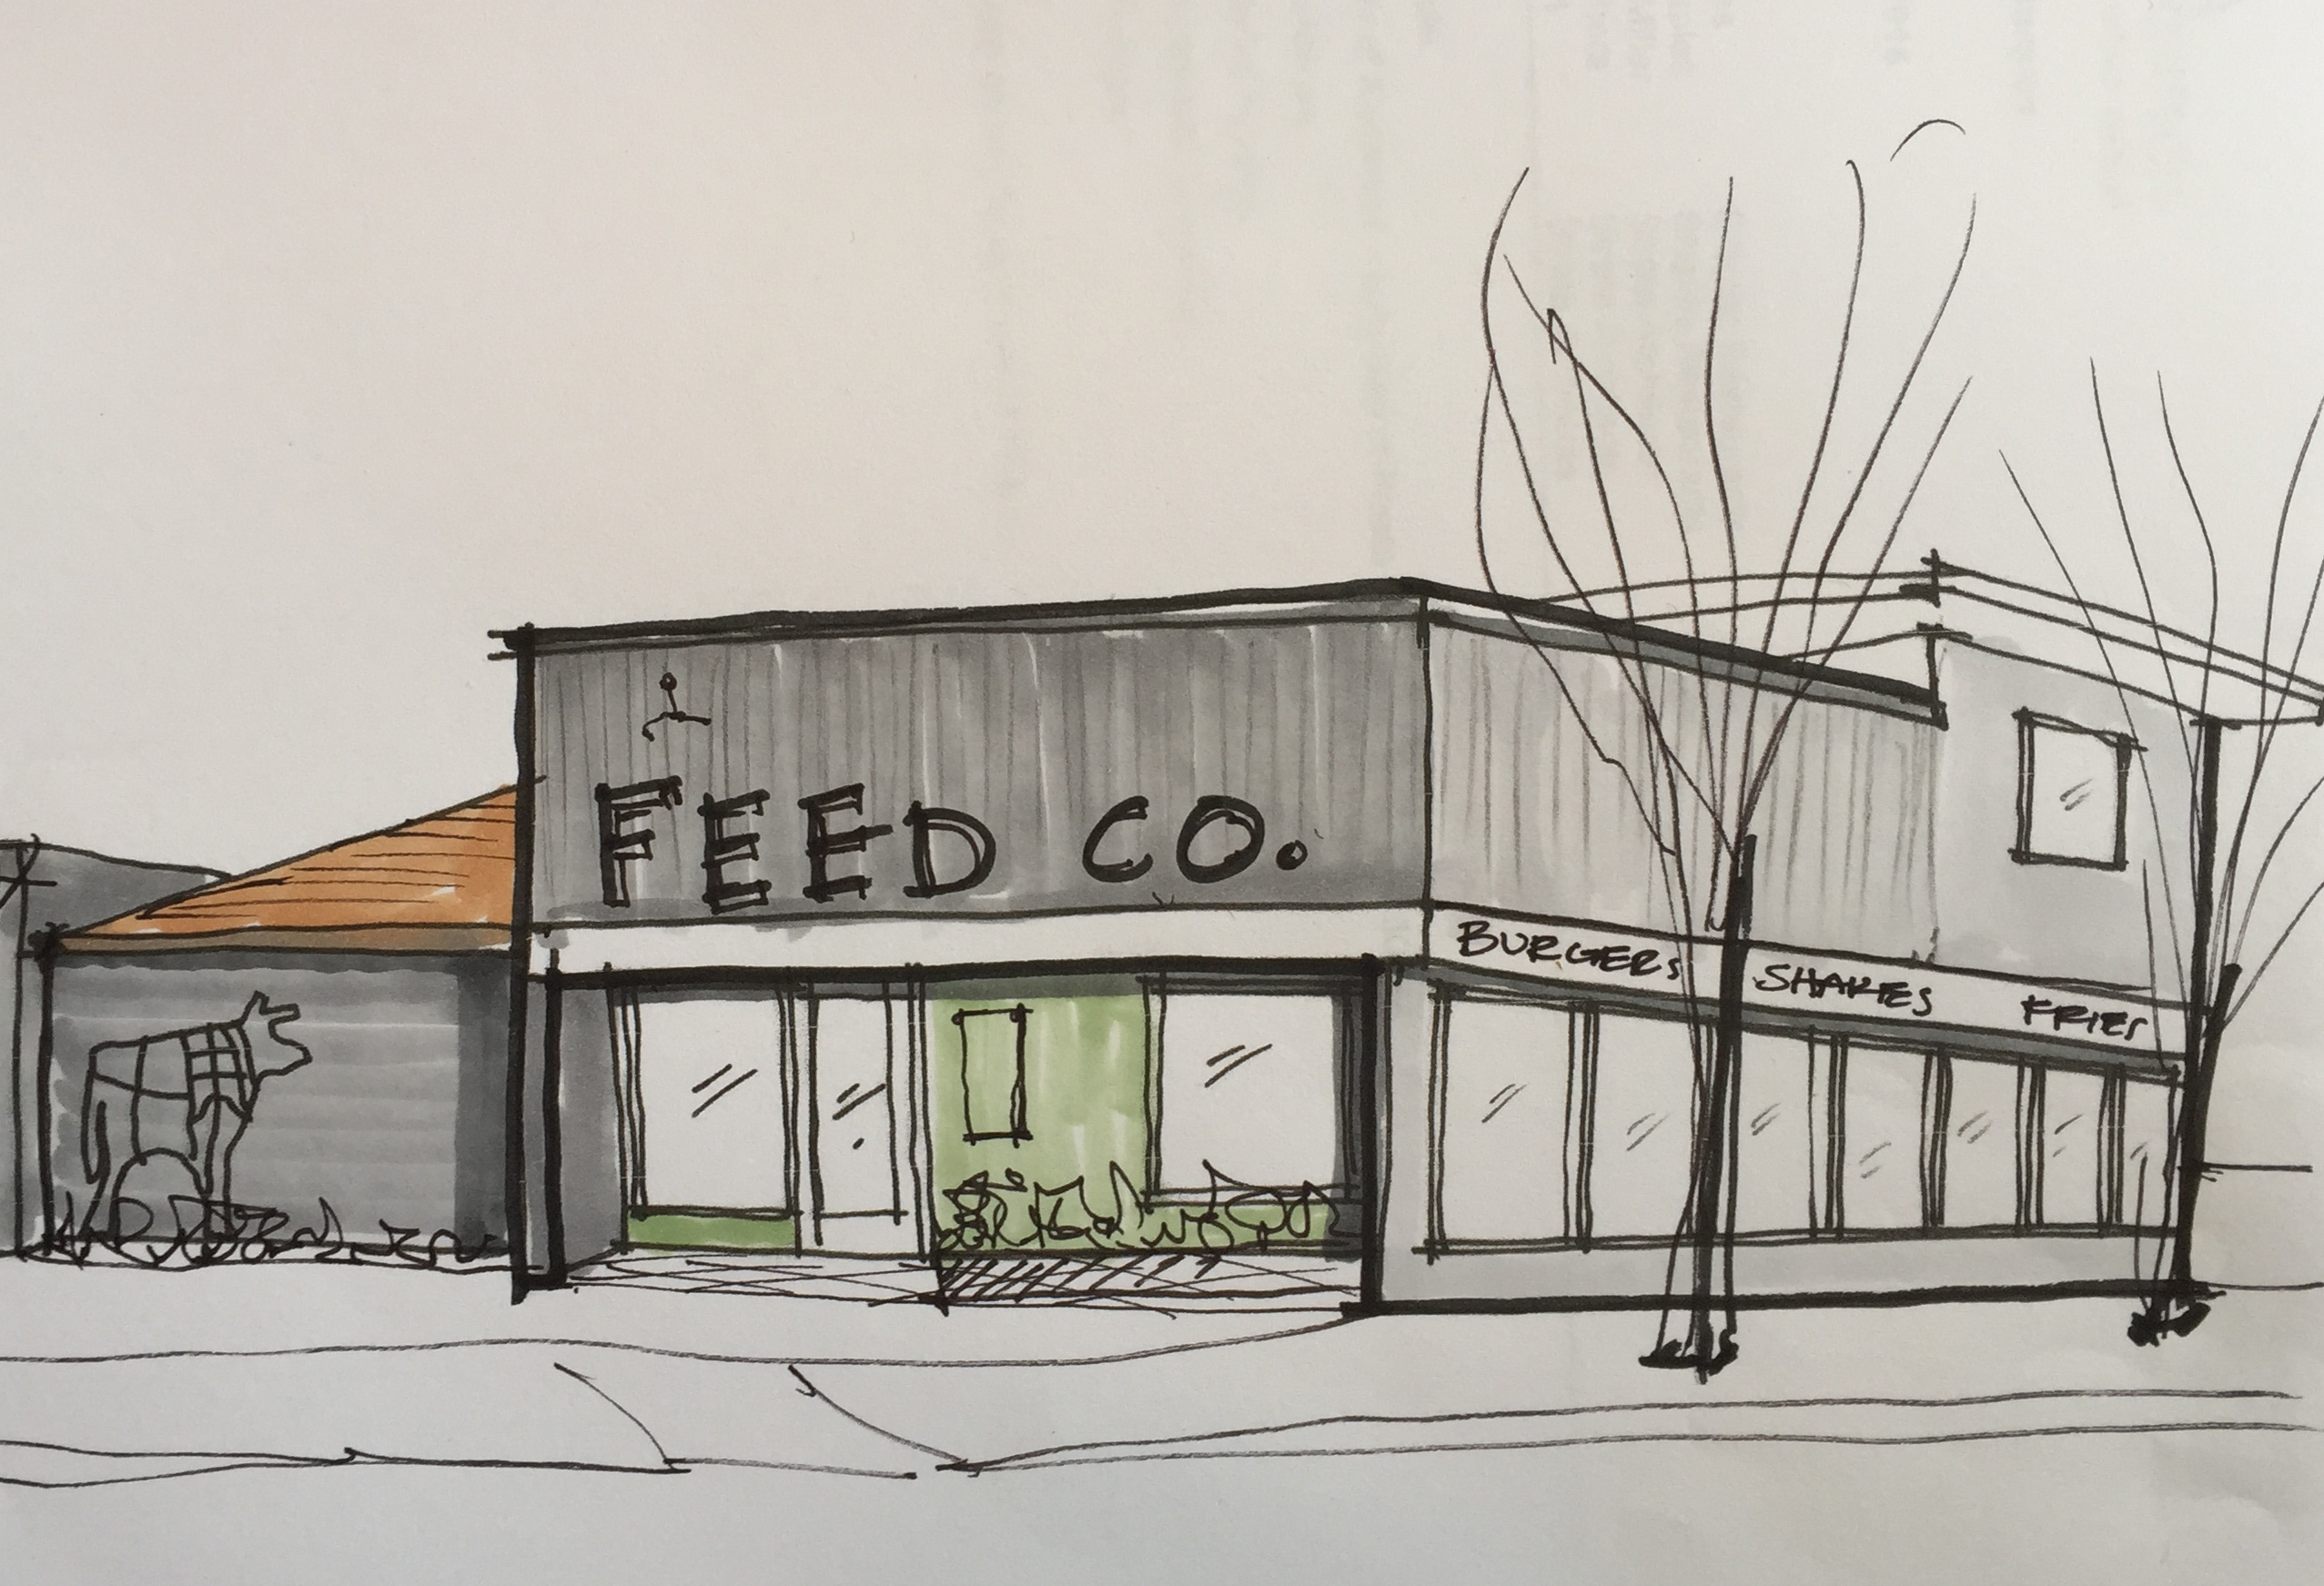 A rendering of Feed Co Burgers